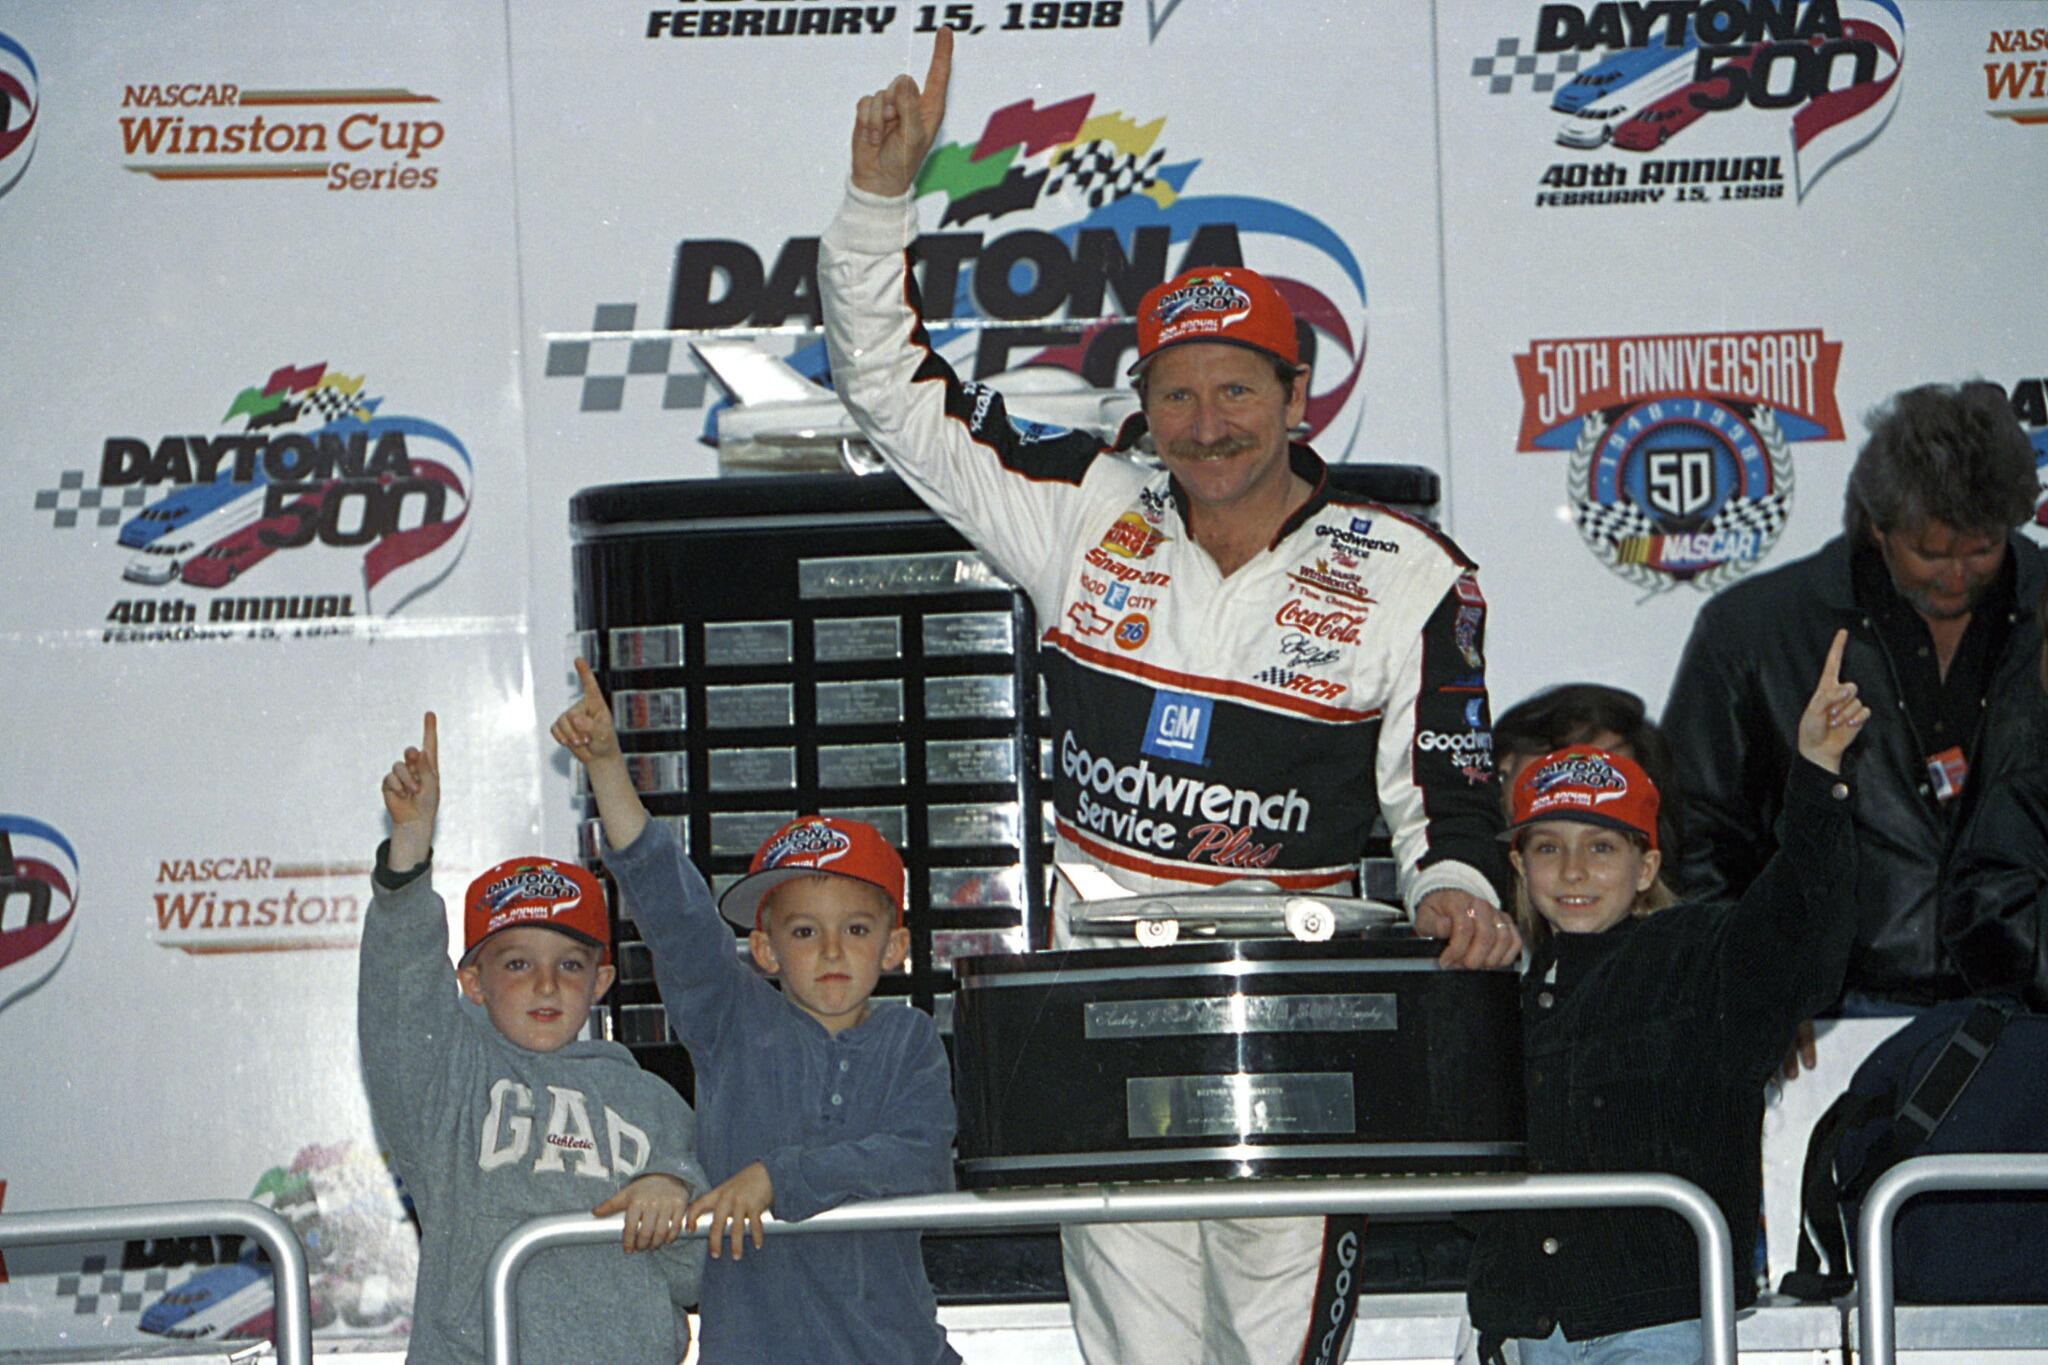 Here's another of #DaleSr in #DAYTONA500 Victory Lane with youngsters @austindillon3 and @tydillon. http://t.co/LGhXMyF9ch